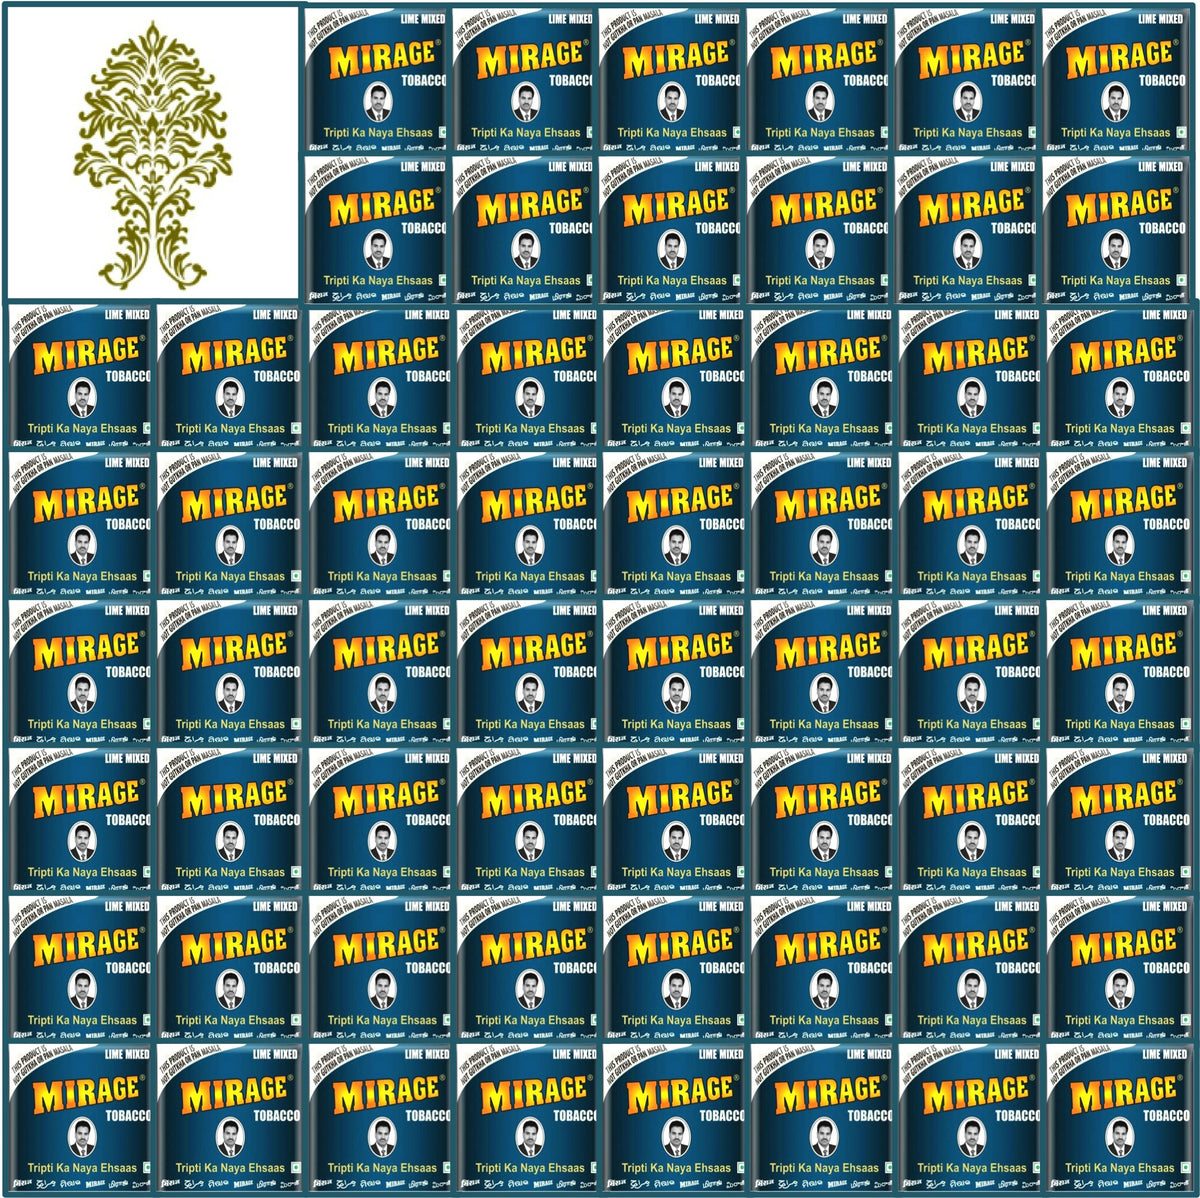 60 Boxes. Mirage Blue Tobacco in Plastic Pack. 30x20g Each.